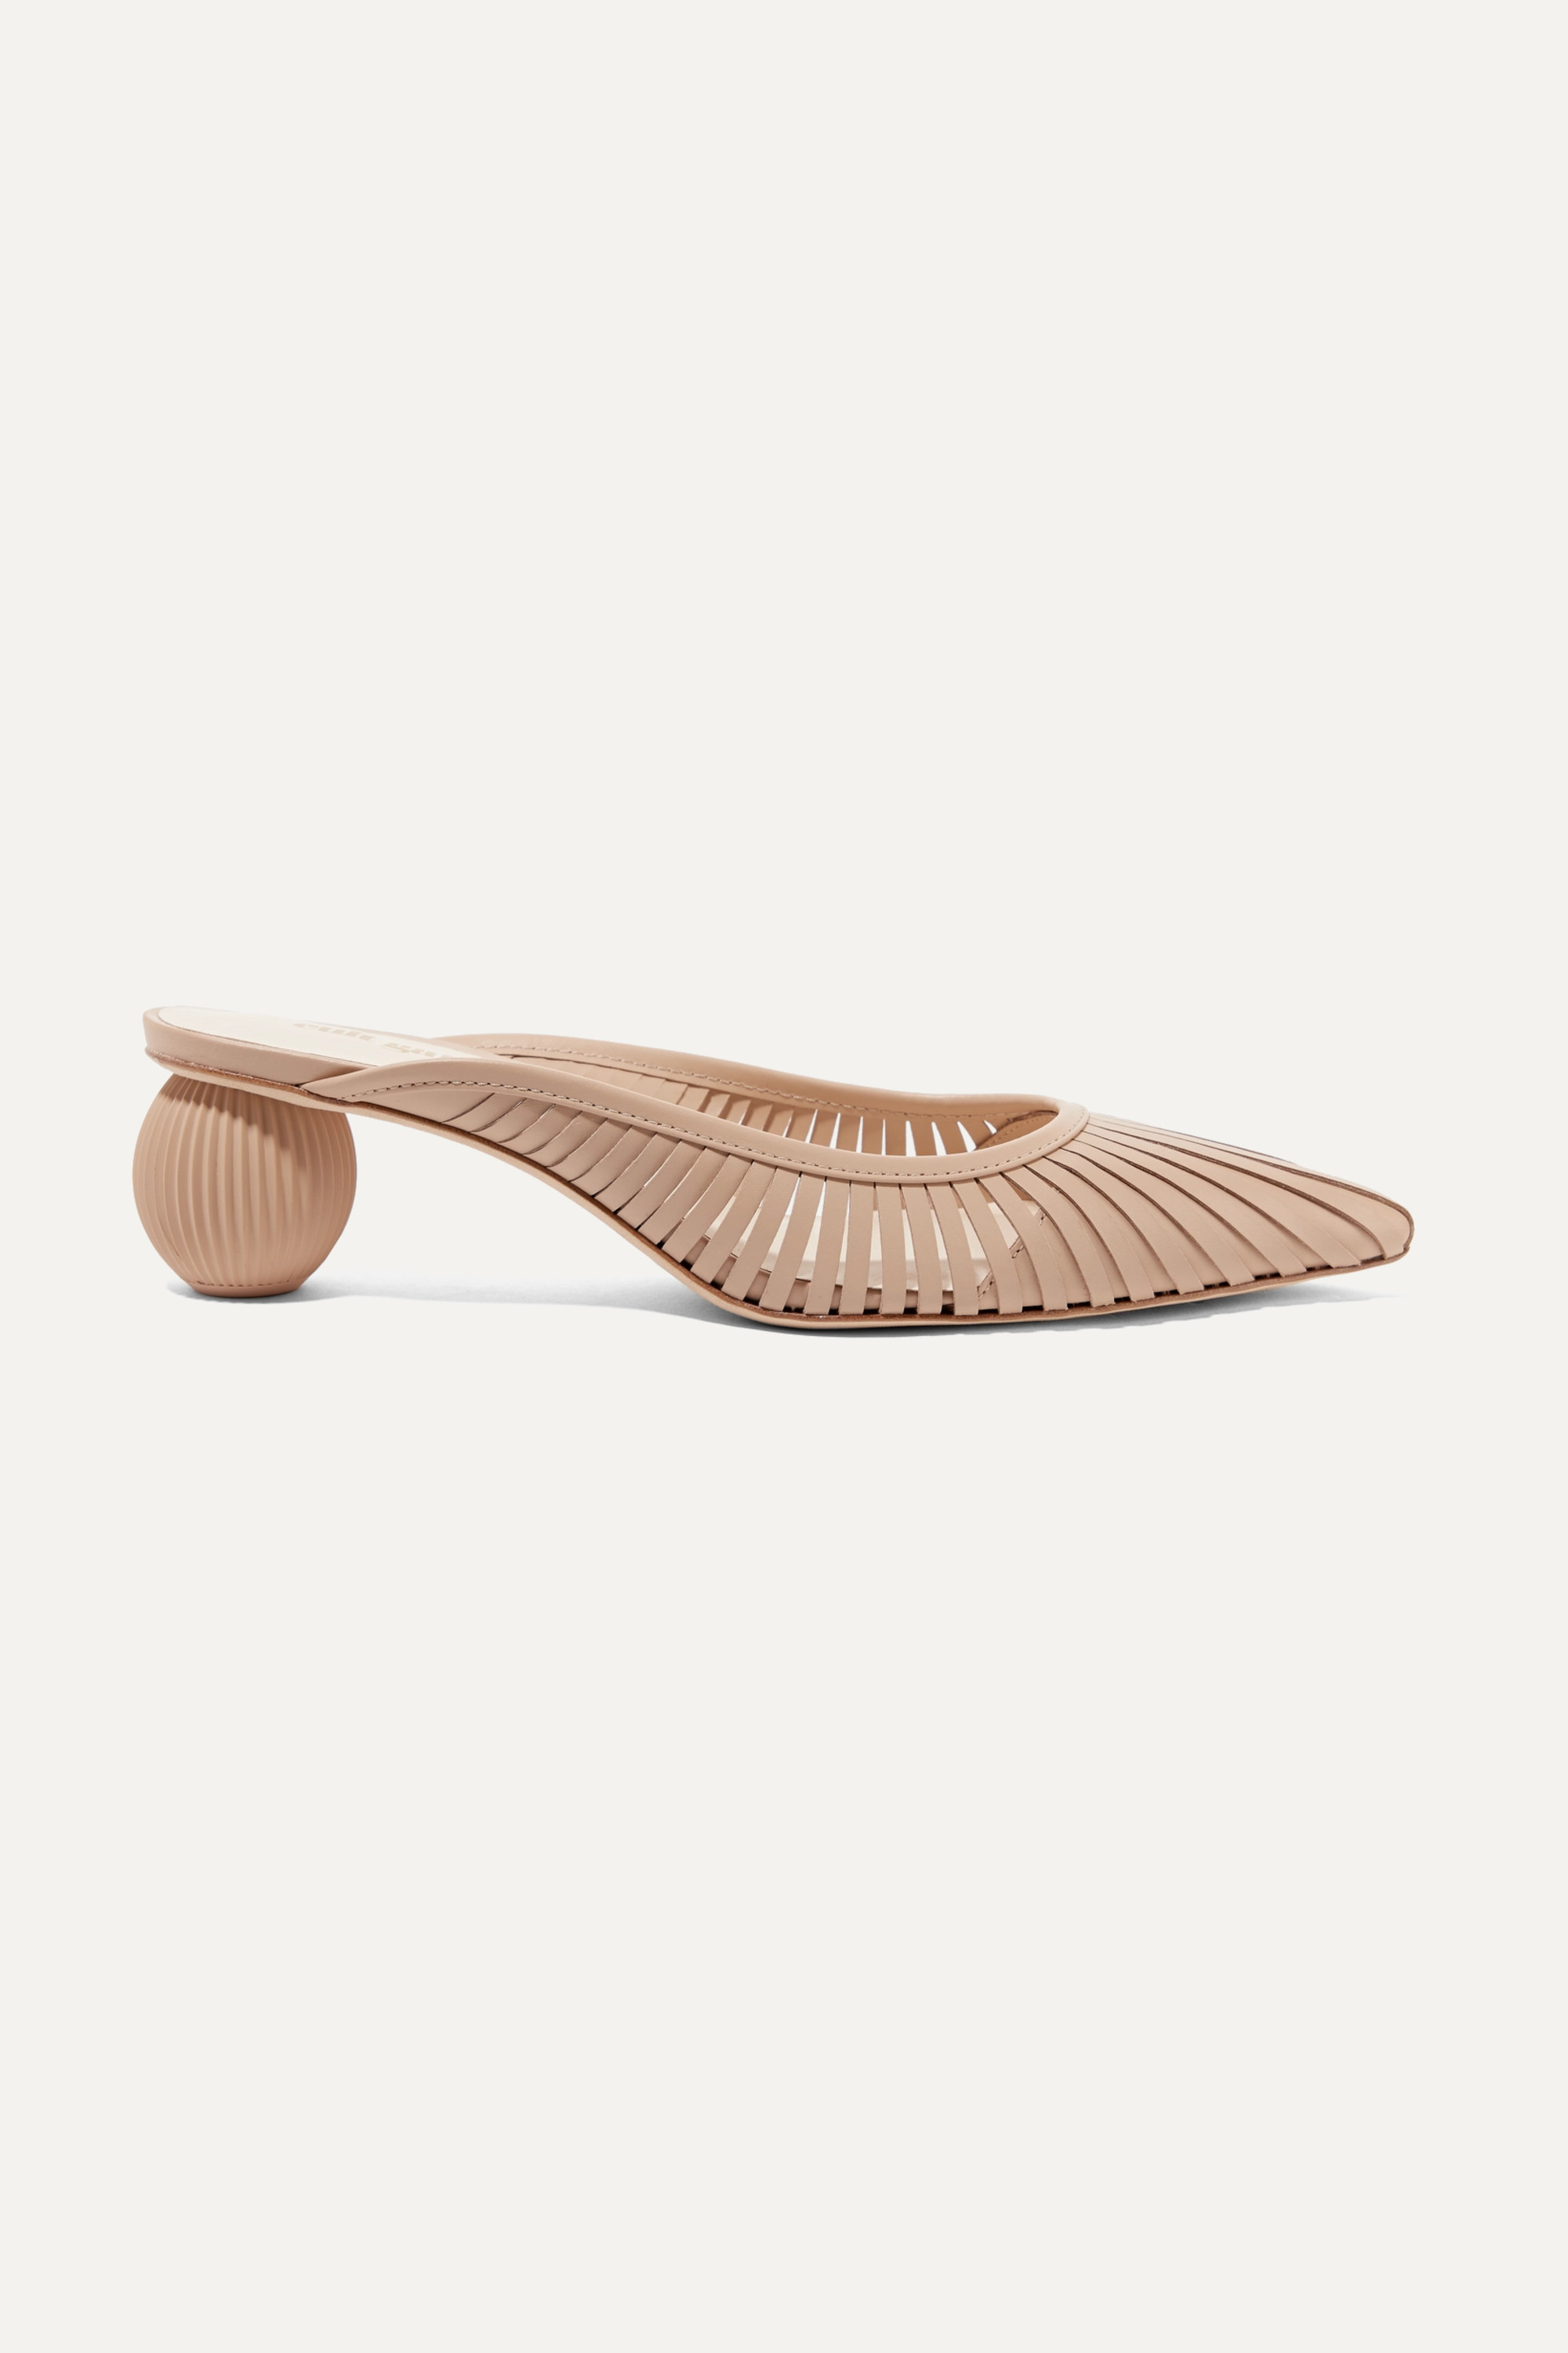 Cult Gaia Alia leather mules